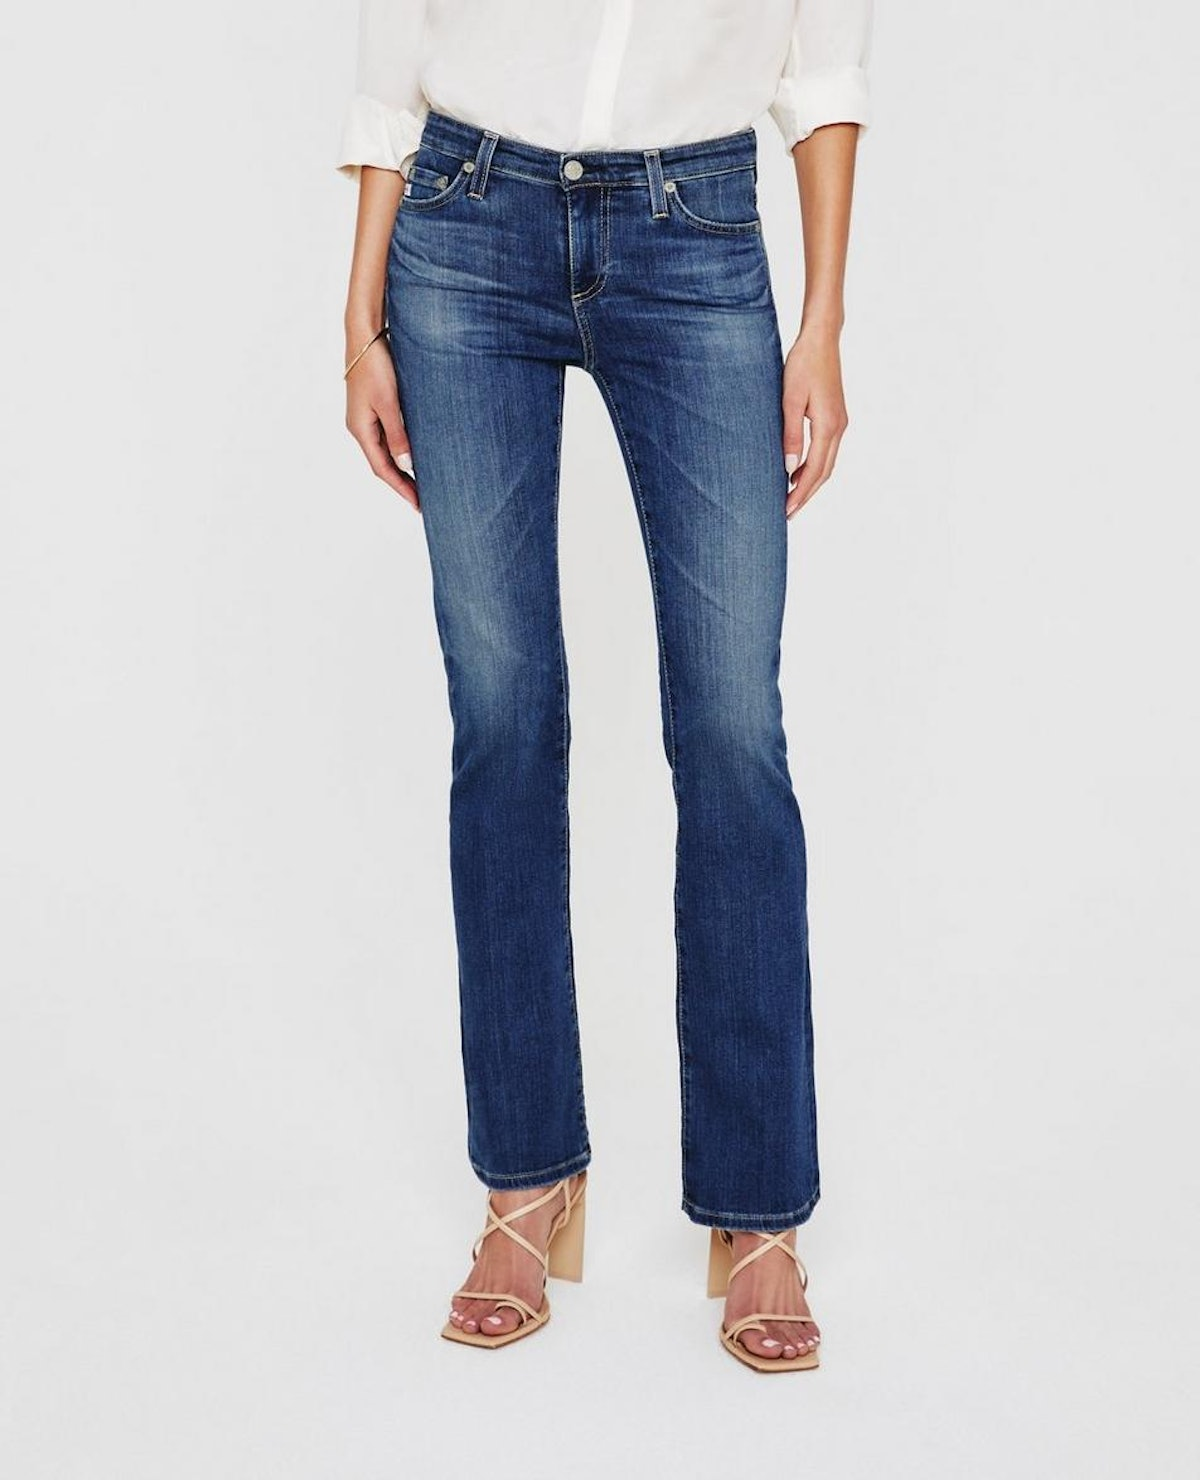 Angel Bootcut Jeans from AG Jeans.